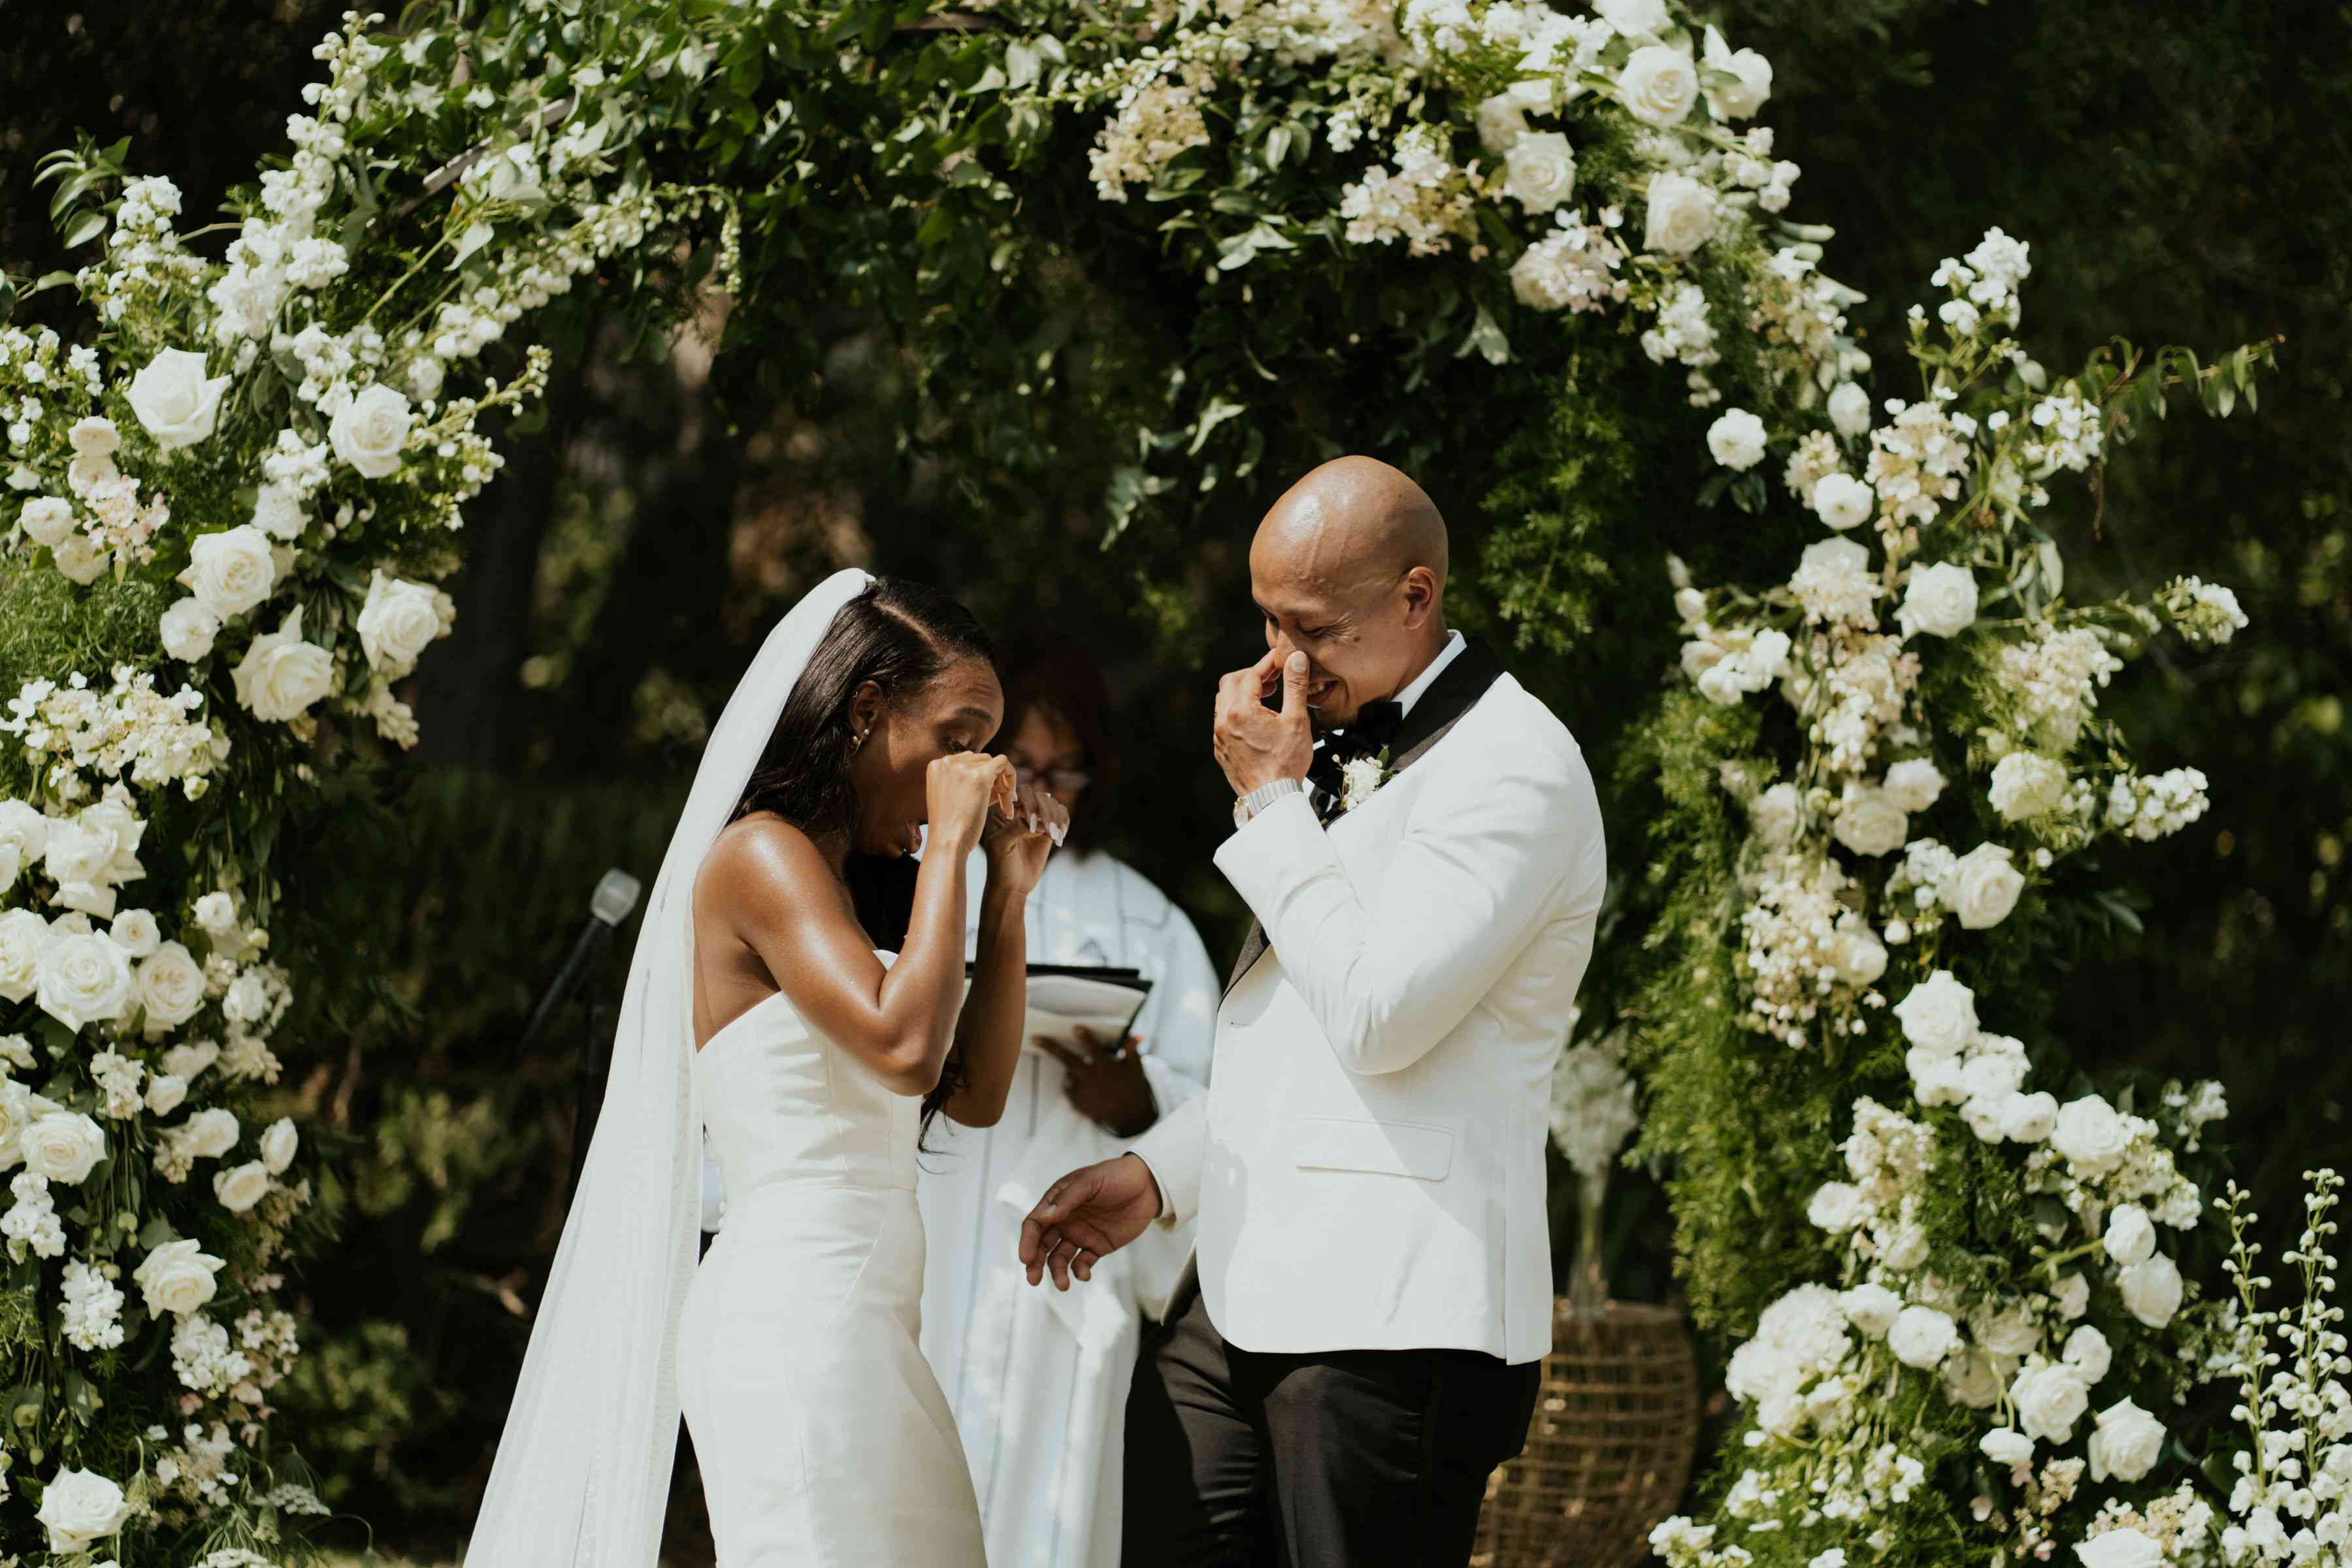 Bride and groom both crying at the wedding altar